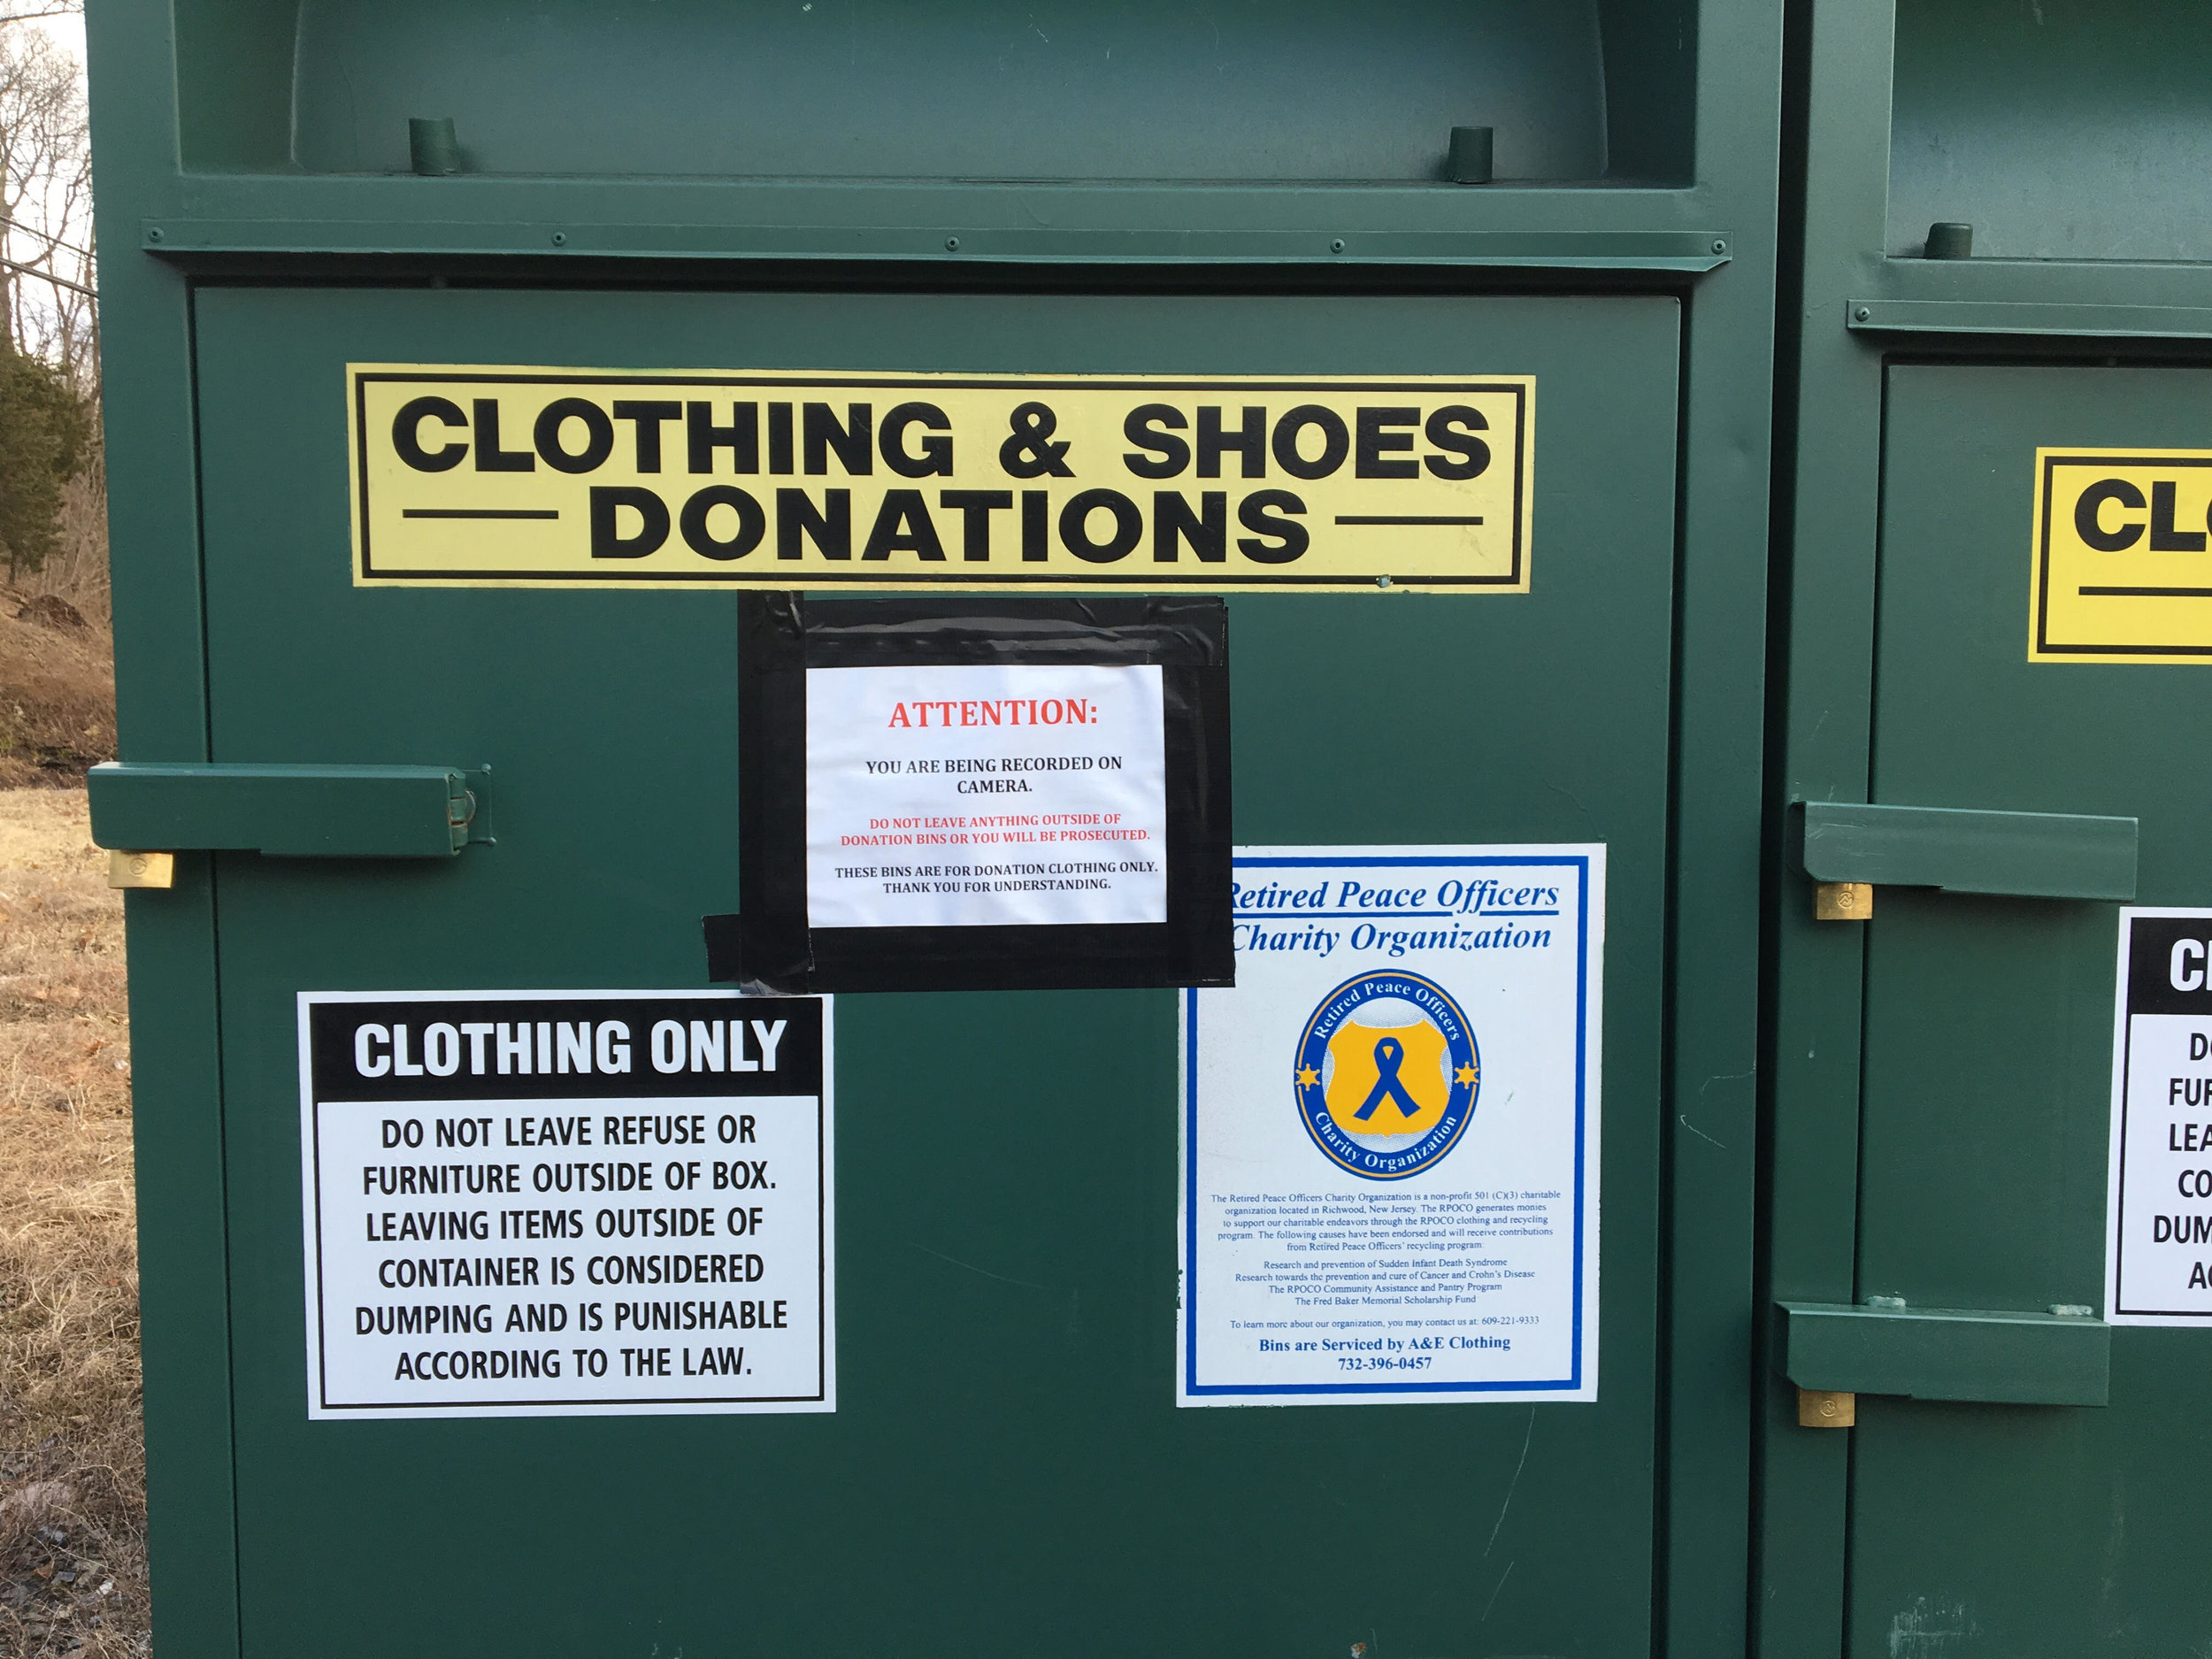 Retired Peace Officers Charity Organization   This box can be located at the far end of the parking lot of 4Ever Fitness  784 Frenchtown Rd  Milford, NJ 08848